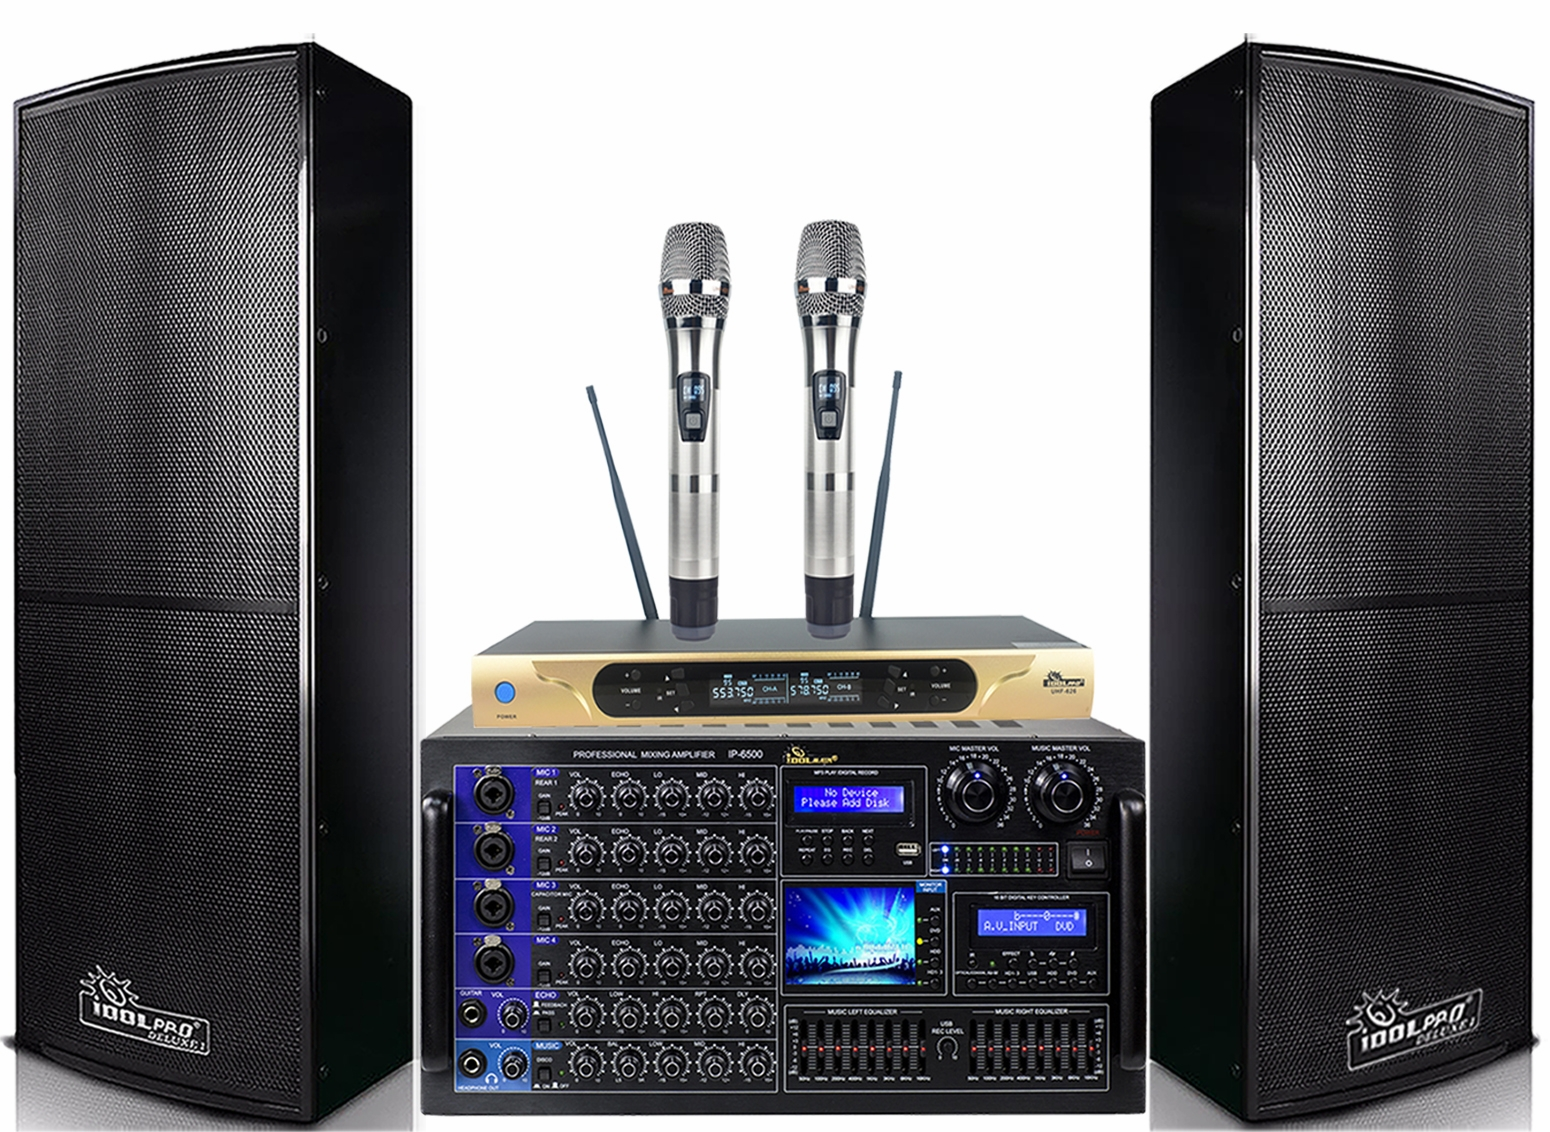 "<font color="" blue"">PACKAGE 4 </font> -- IPS-DELUXE I Speakers & IP-6500 Mixing Amplifier & UHF-626 Wireless Microphones"